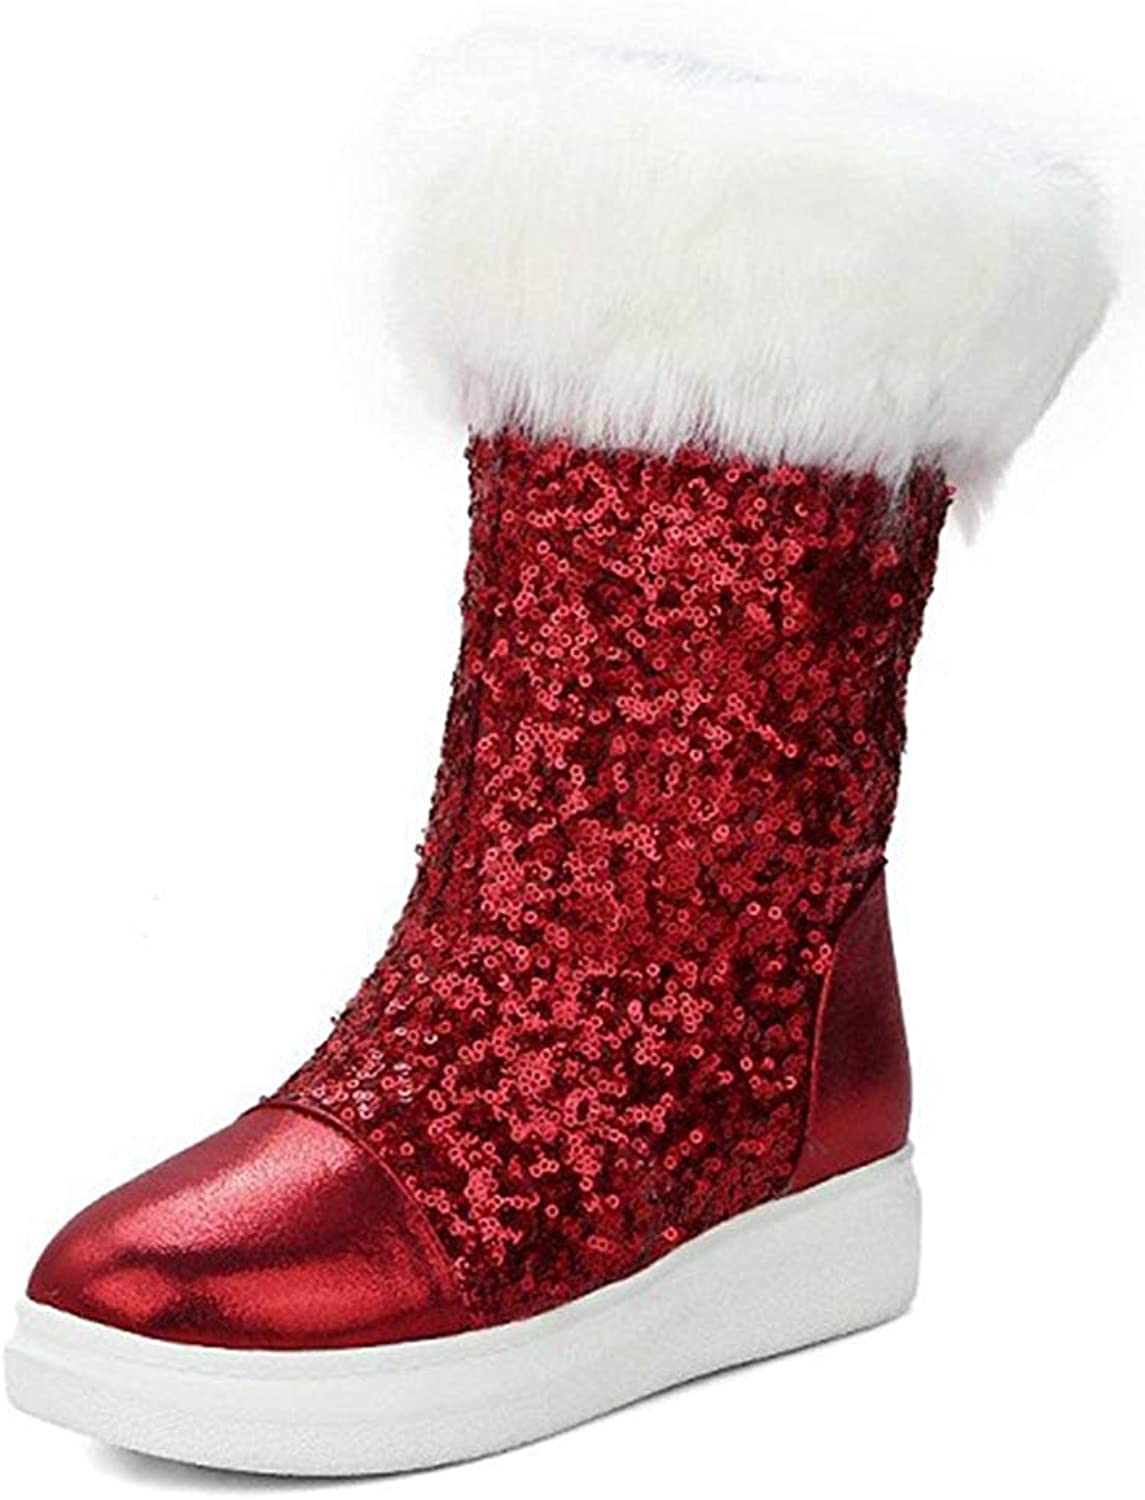 Unm Women's Warm Glitter Sequins Thick Sole Faux Fur Lined Round Toe Flat Platform Pull On Mid Calf Snow Boots